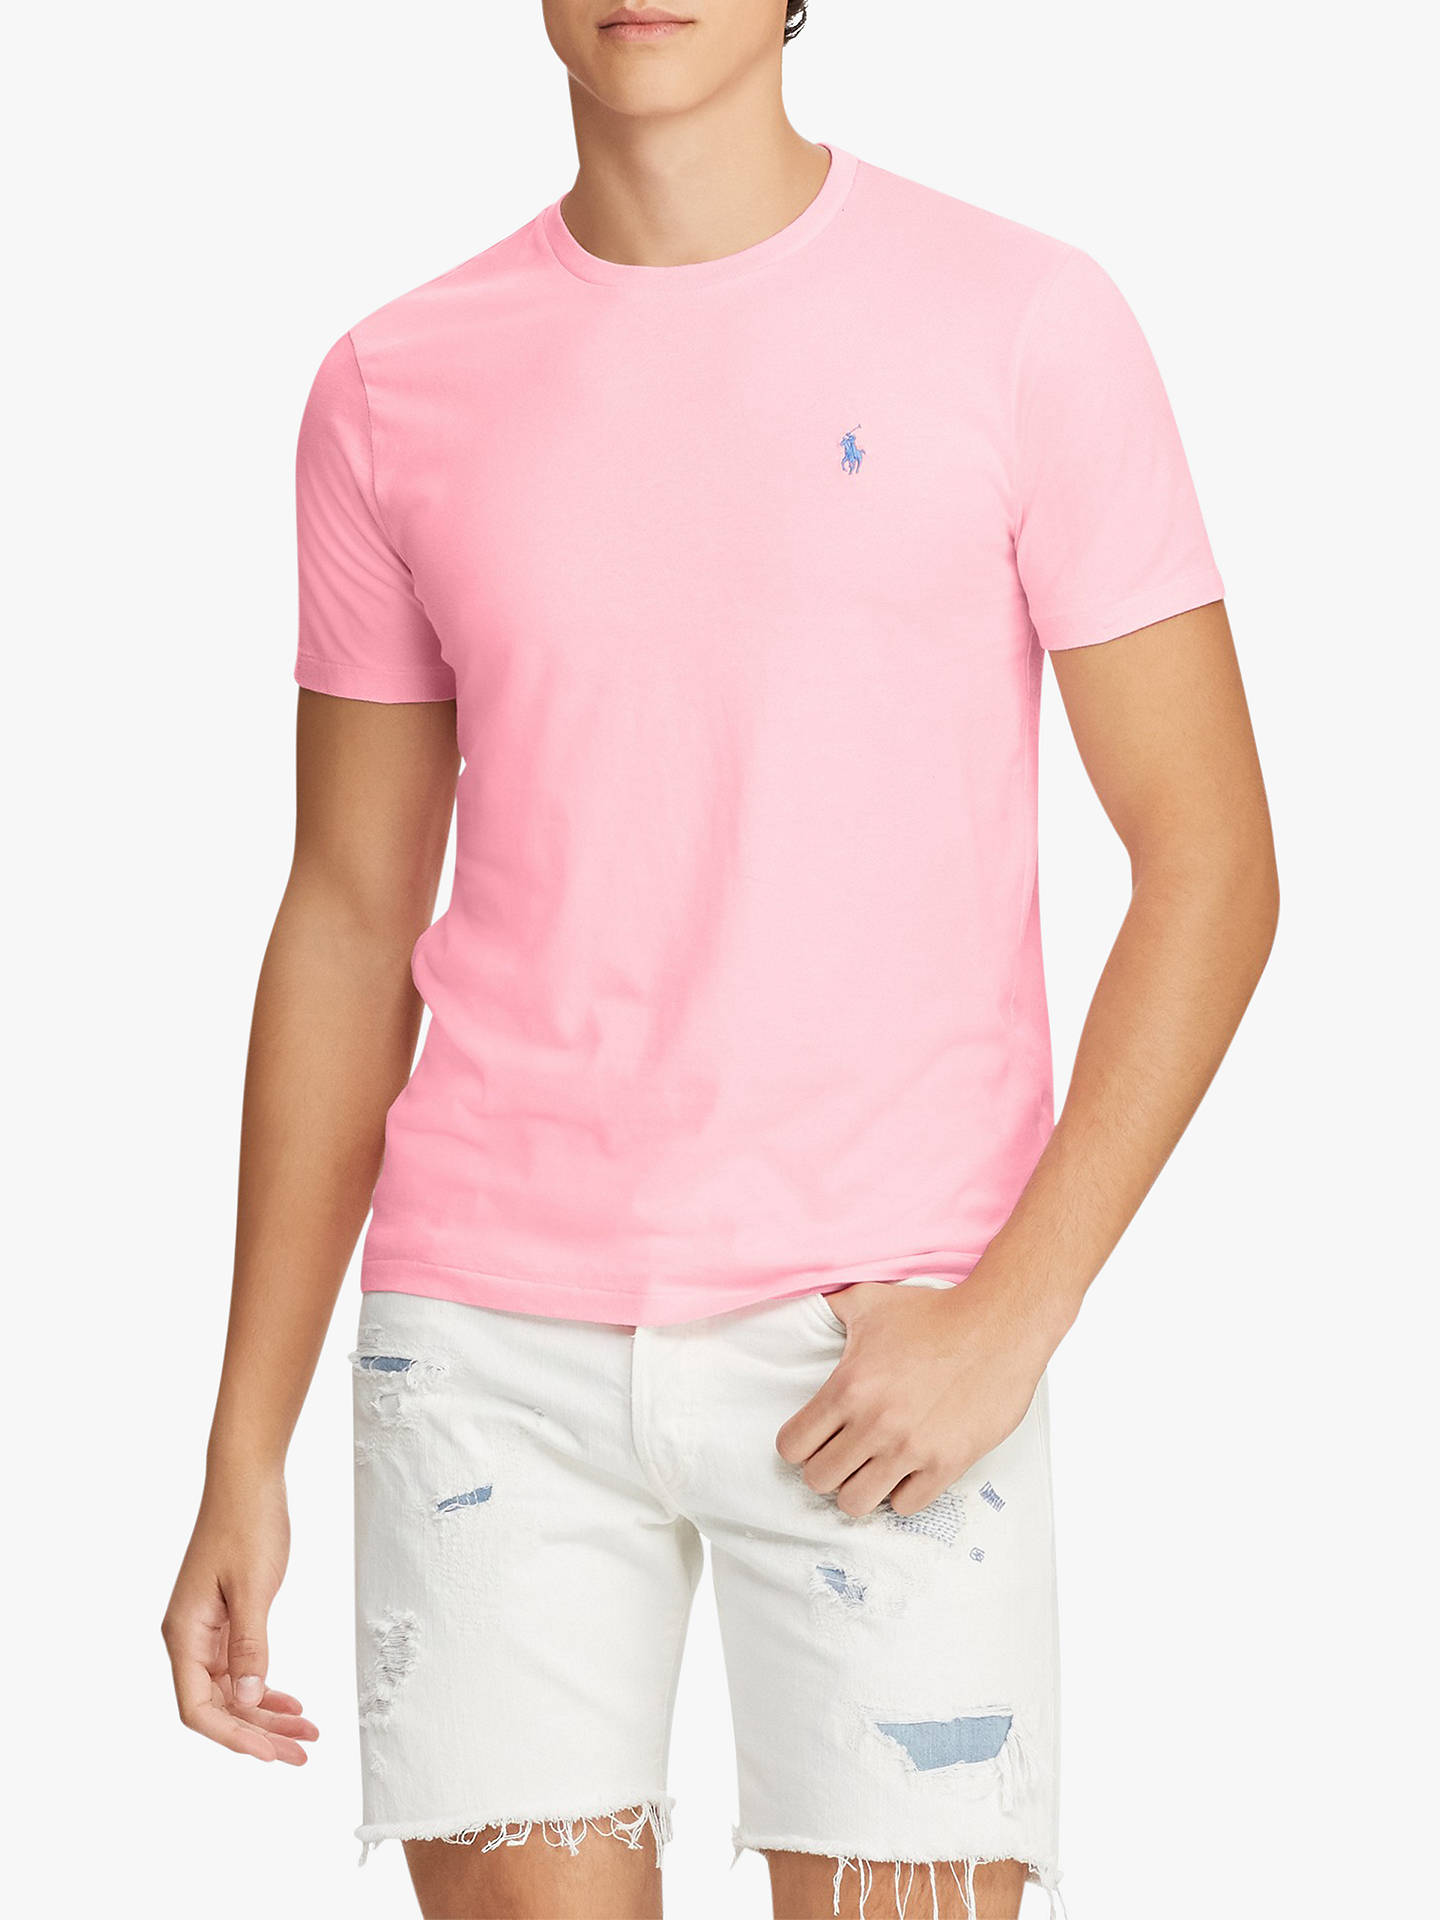 07c5a49cf Polo Ralph Lauren Custom Slim Fit Pocket T-Shirt at John Lewis ...